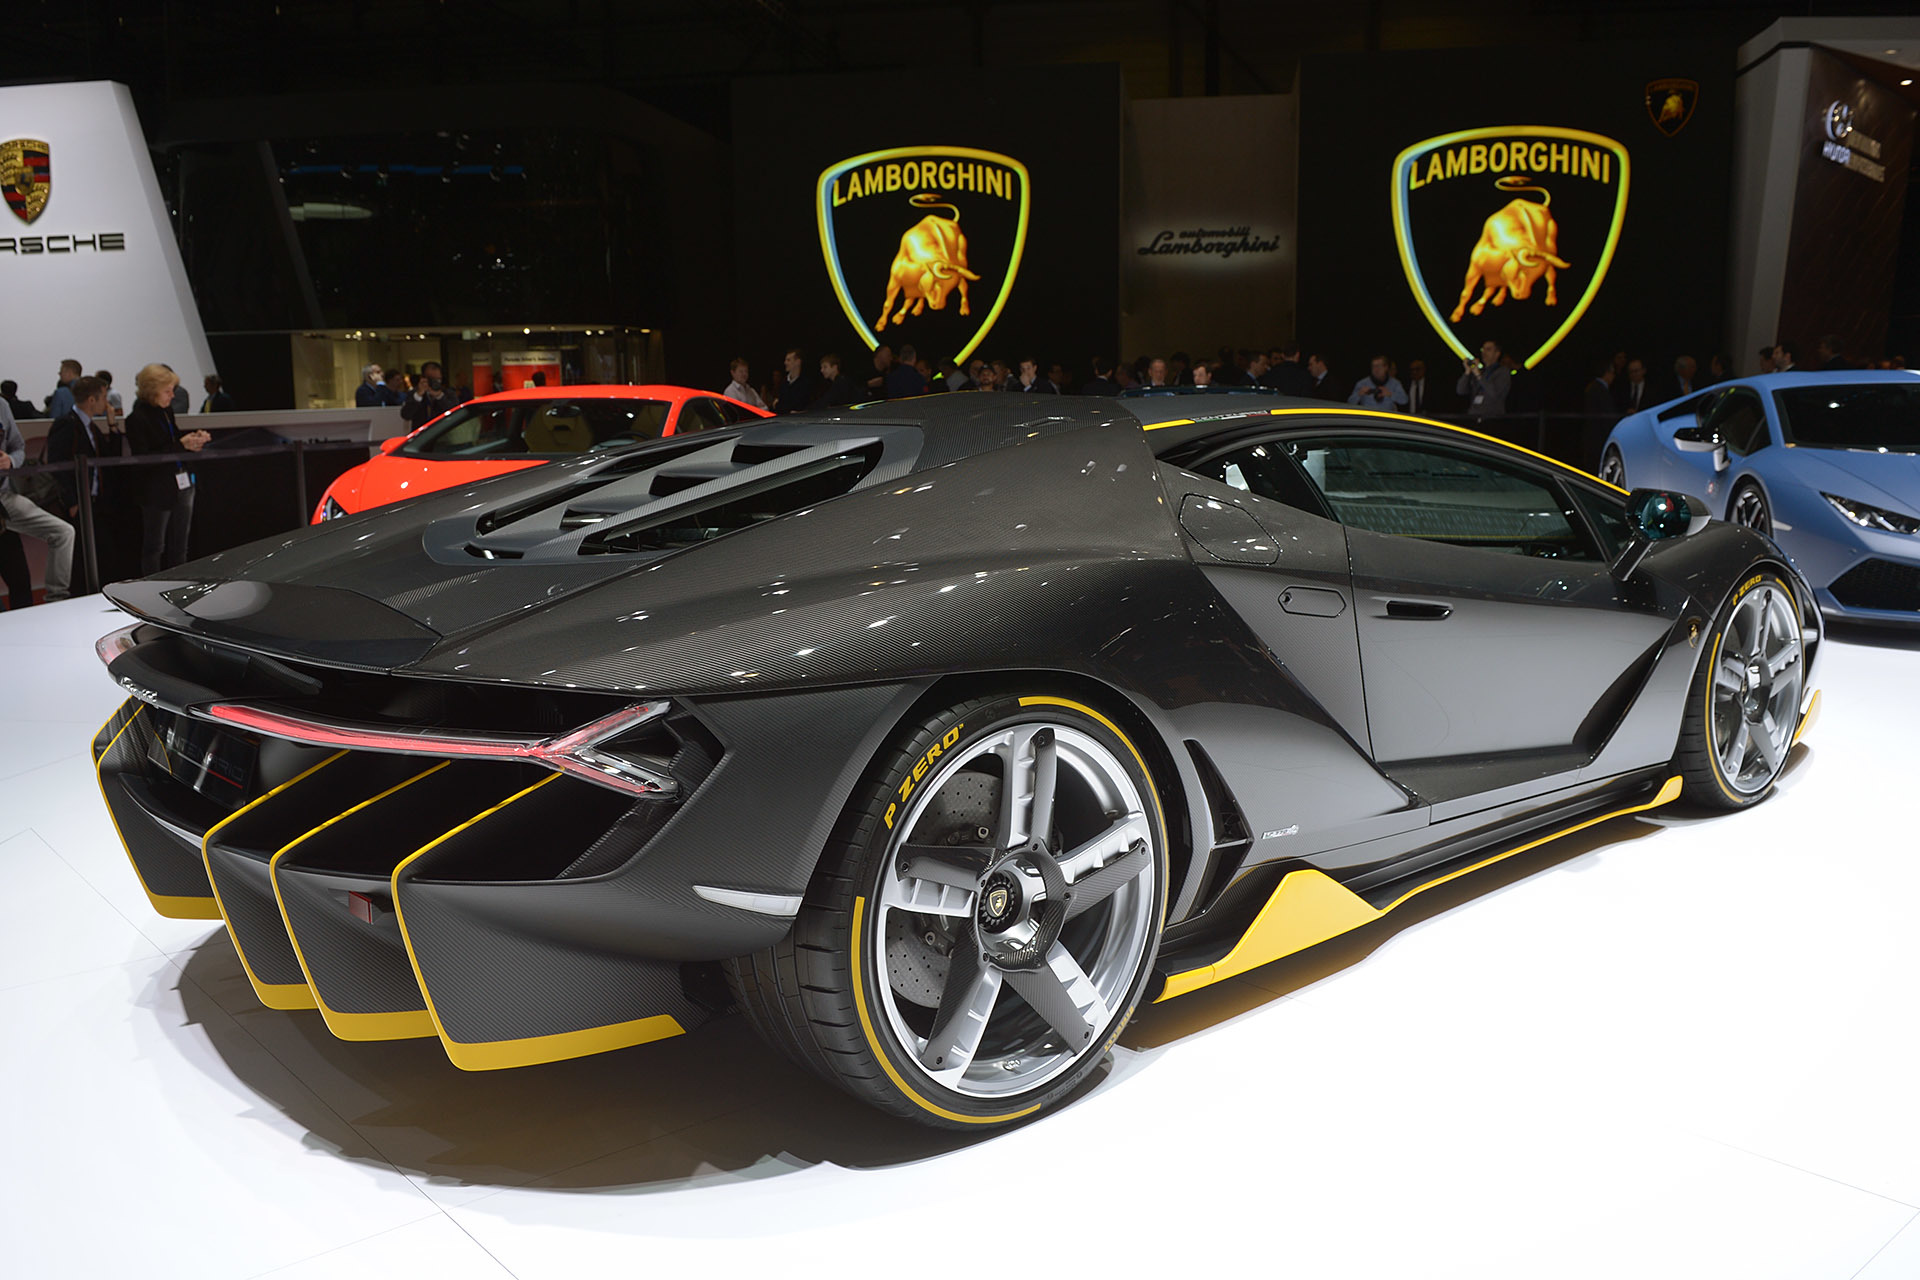 Lamborghini Reveals The New 760 Hp Centenario Hypercar At